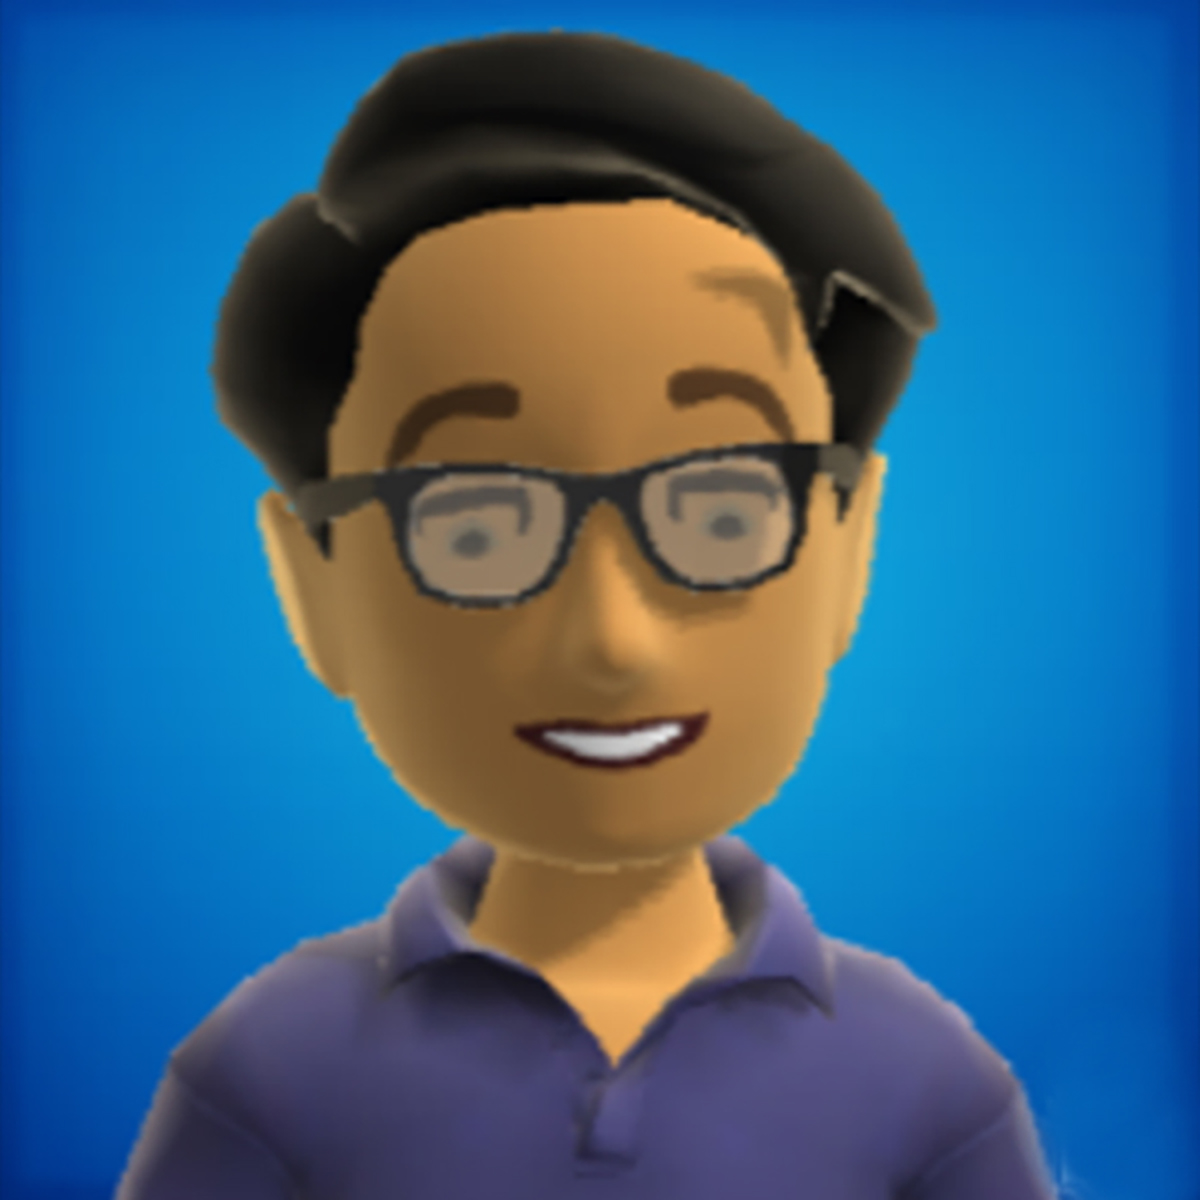 My New Xbox Experience Avatar